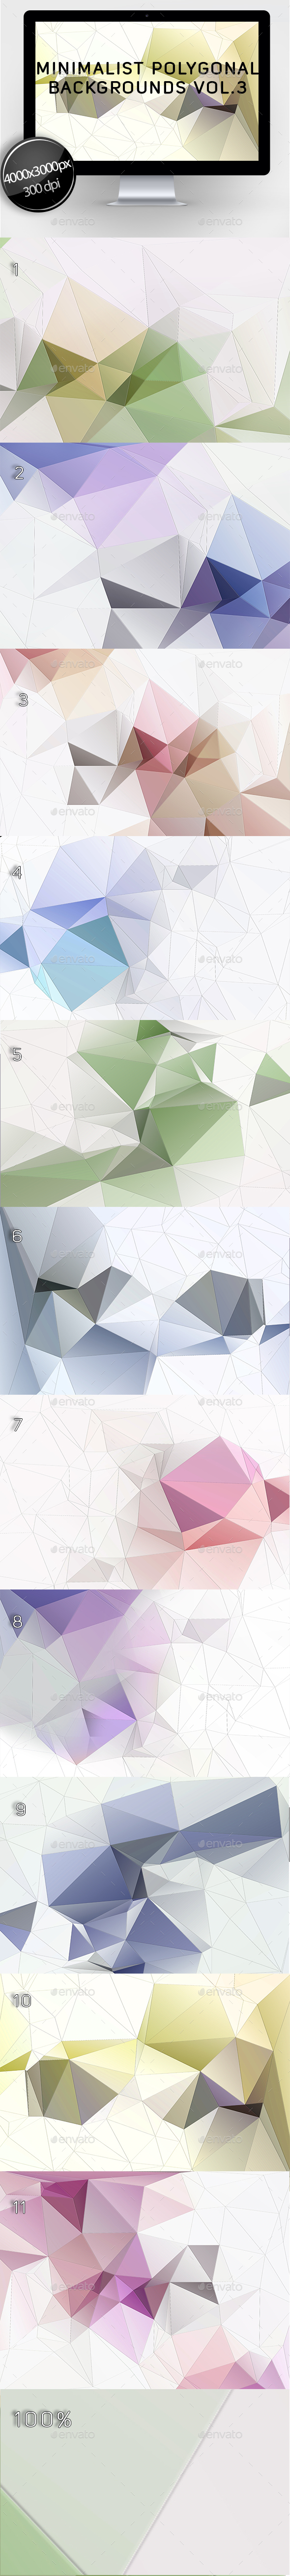 Minimalist Polygonal Backgrounds Vol.3